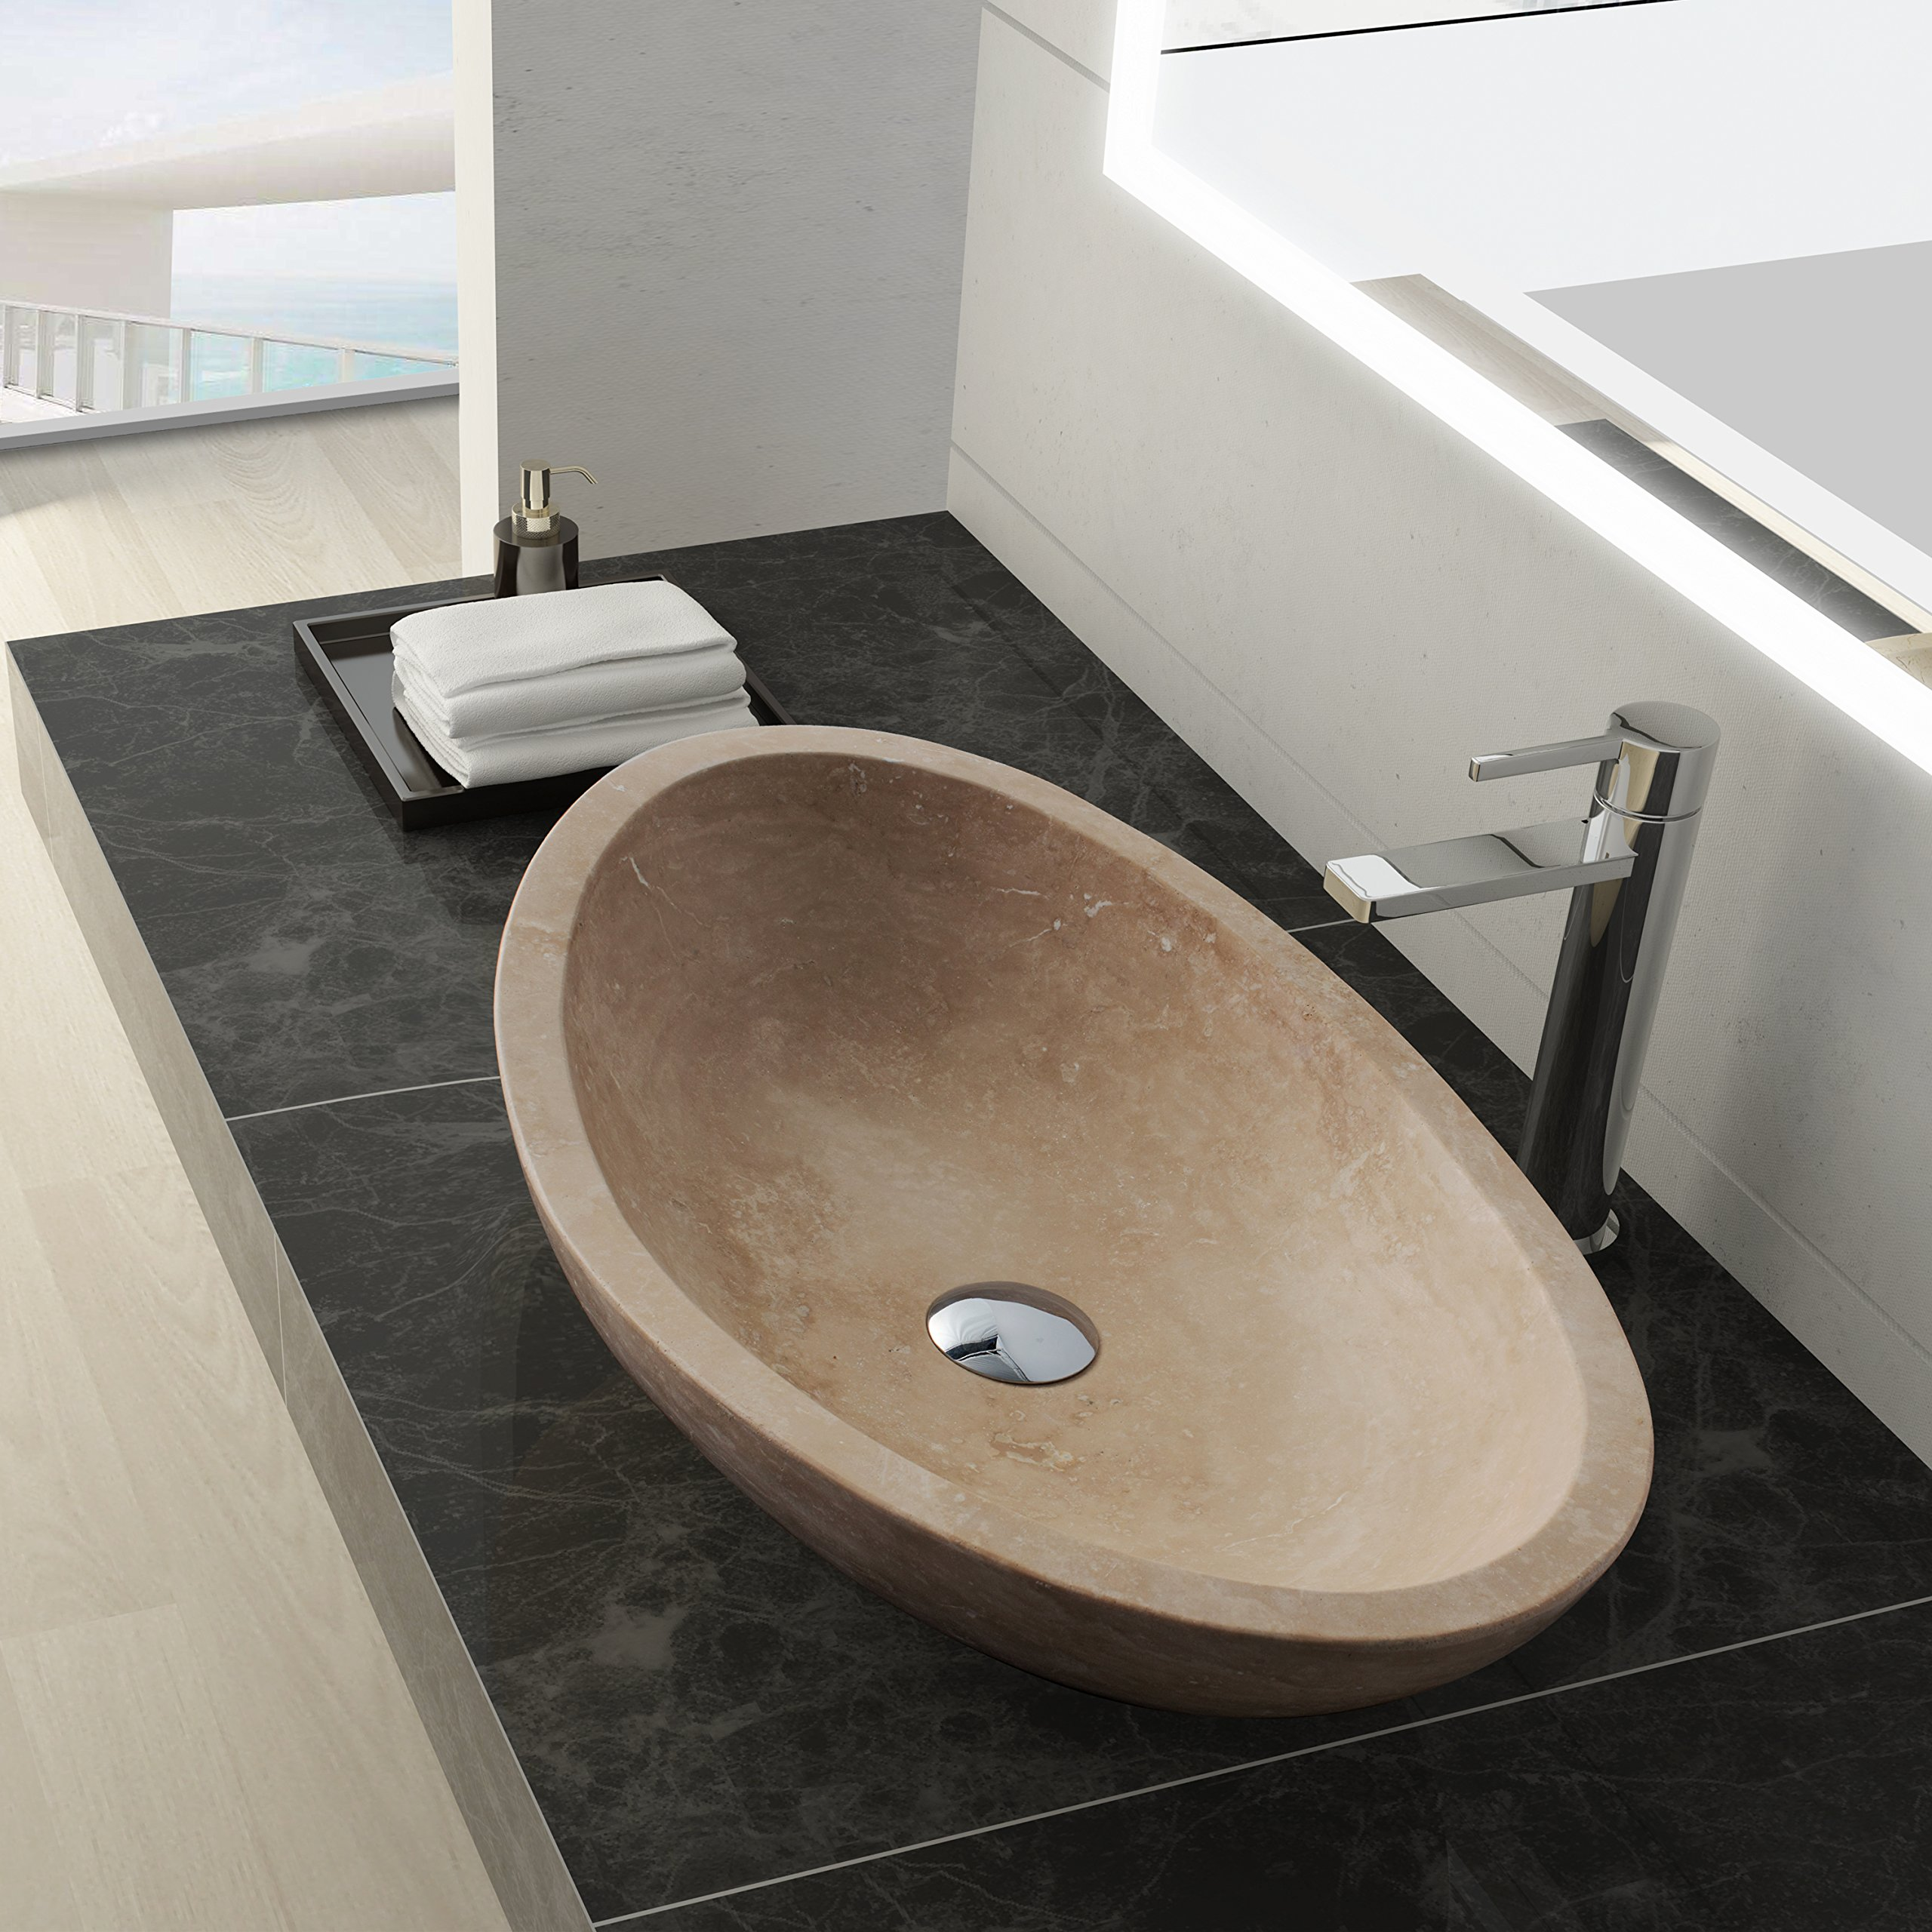 Get quotations · maykke livingston 24 oval stone vessel sink modern cream natural stone travertine sinks for